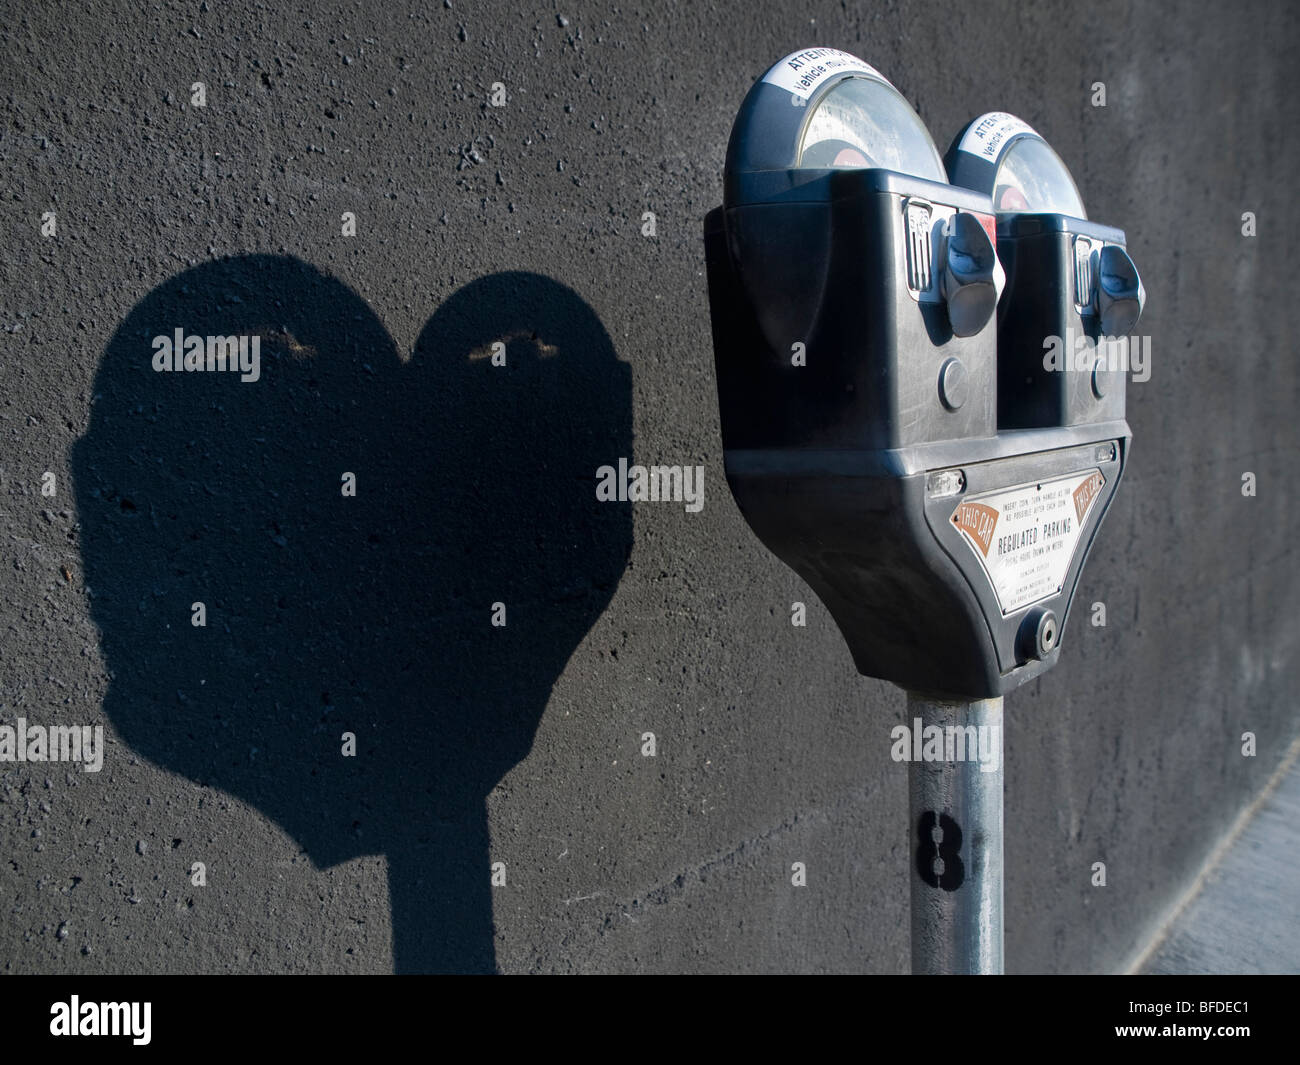 Parking meter and shadow. - Stock Image